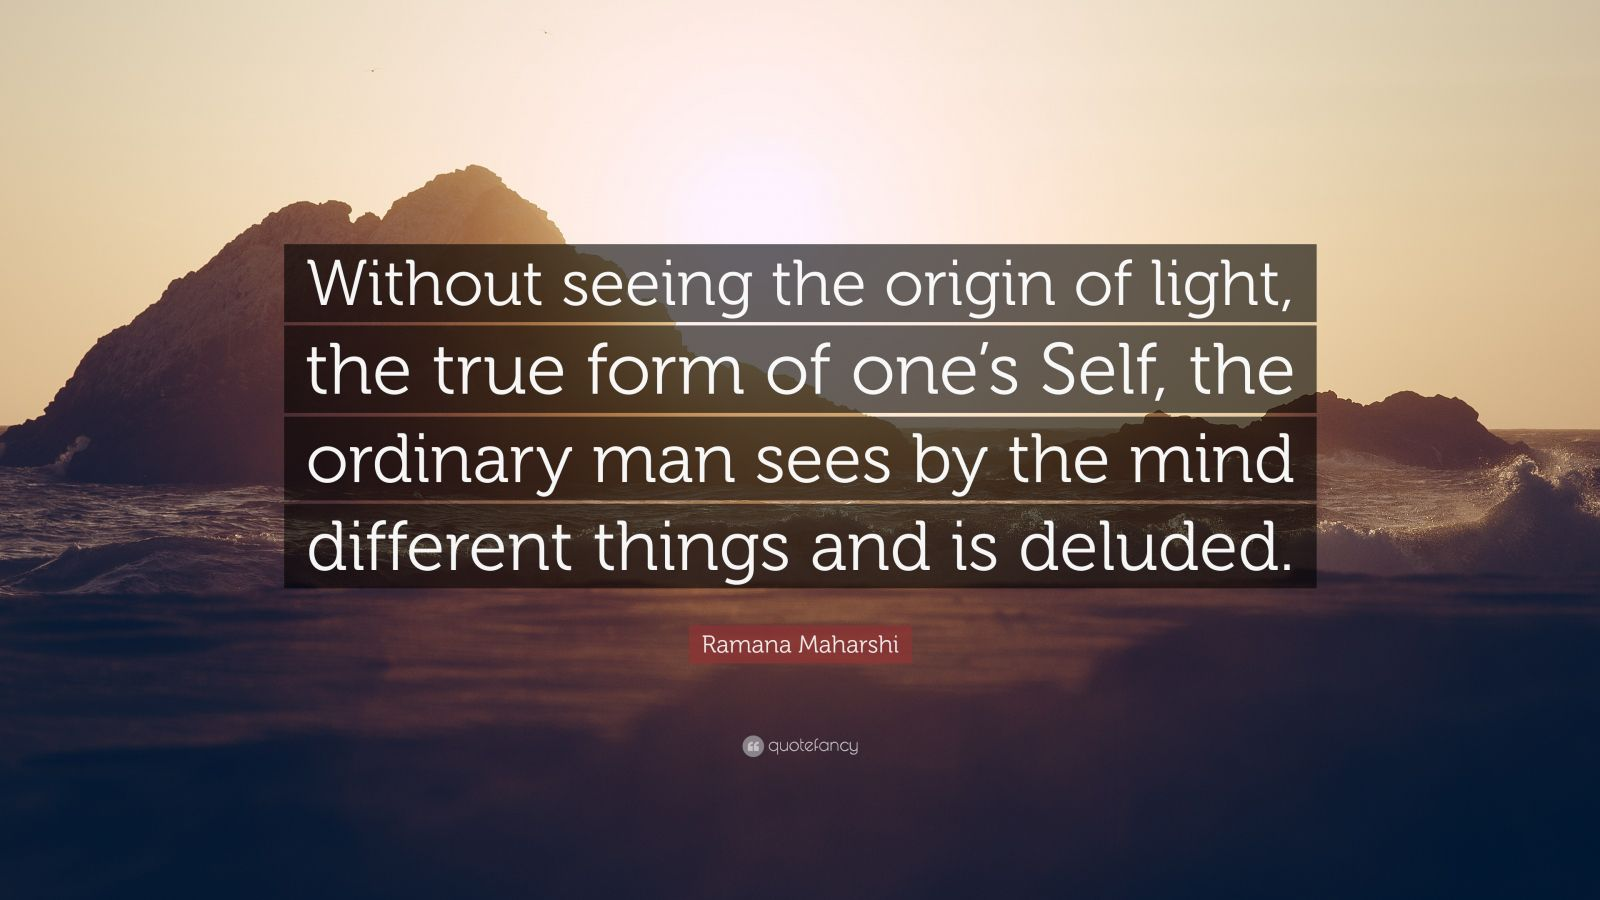 """Ramana Maharshi Quote: """"Without seeing the origin of light, the true form of one's Self, the ordinary man sees by the mind different things and is deluded."""""""